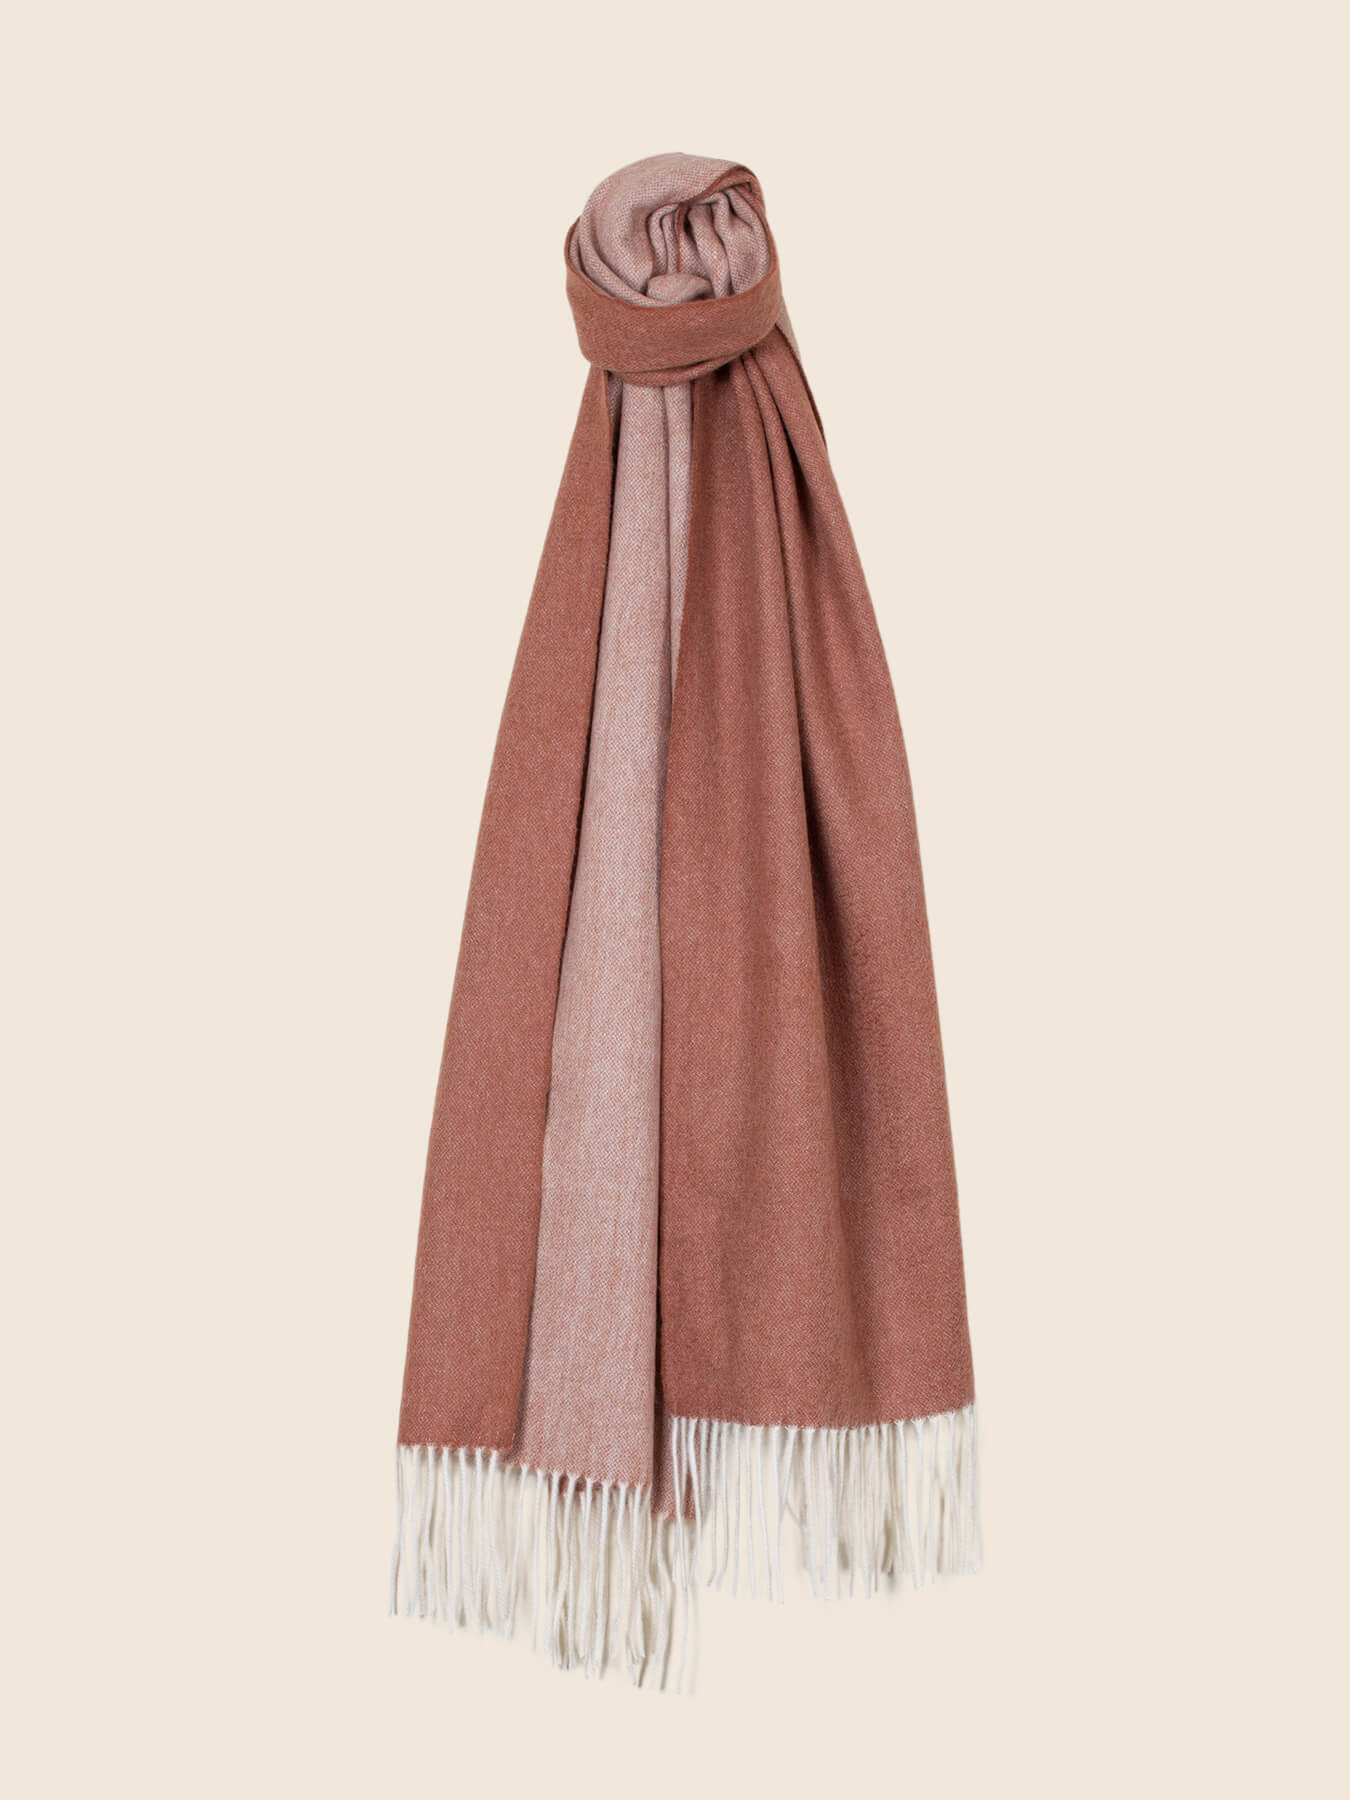 Two-Tone Reversible Cashmere Shawl Burnt Orange 1